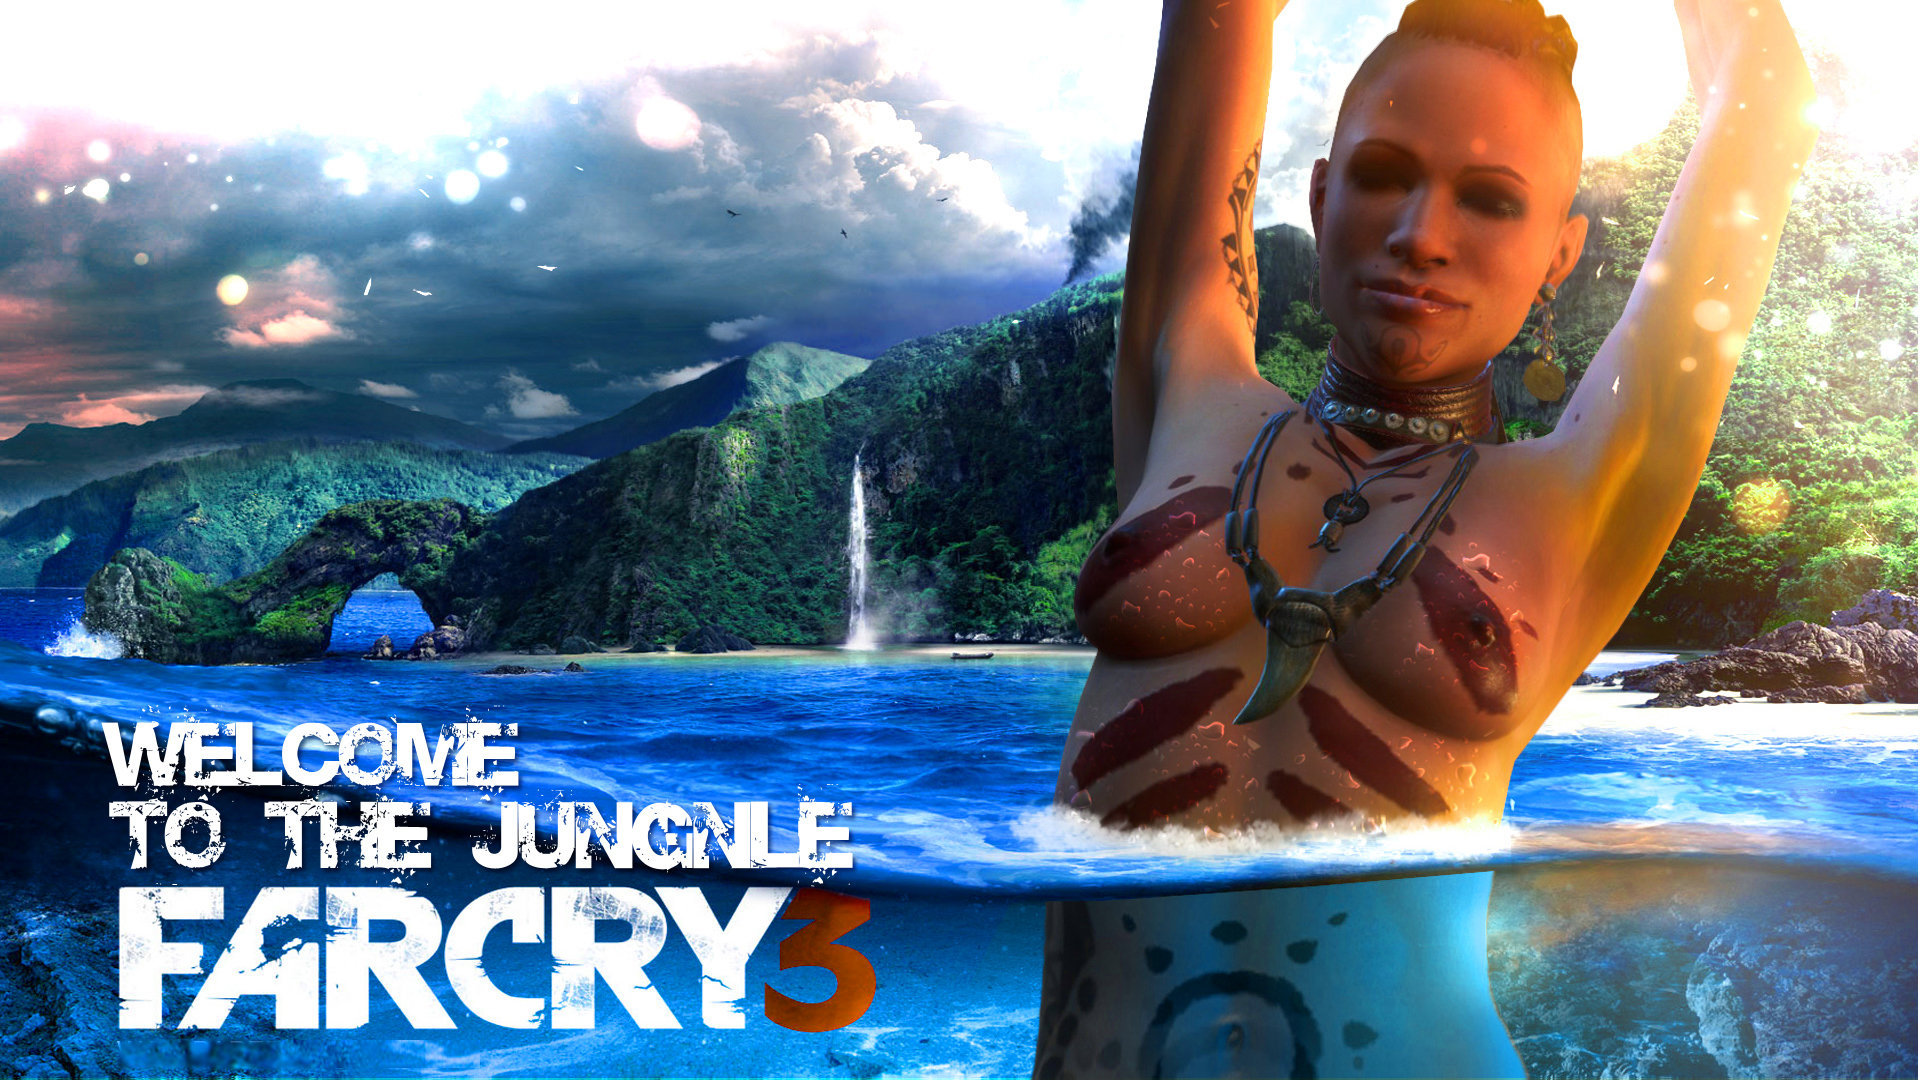 Far Cry 3 Wallpapers 19201080 23192 HD Wallpaper Res 1920x1080 1920x1080